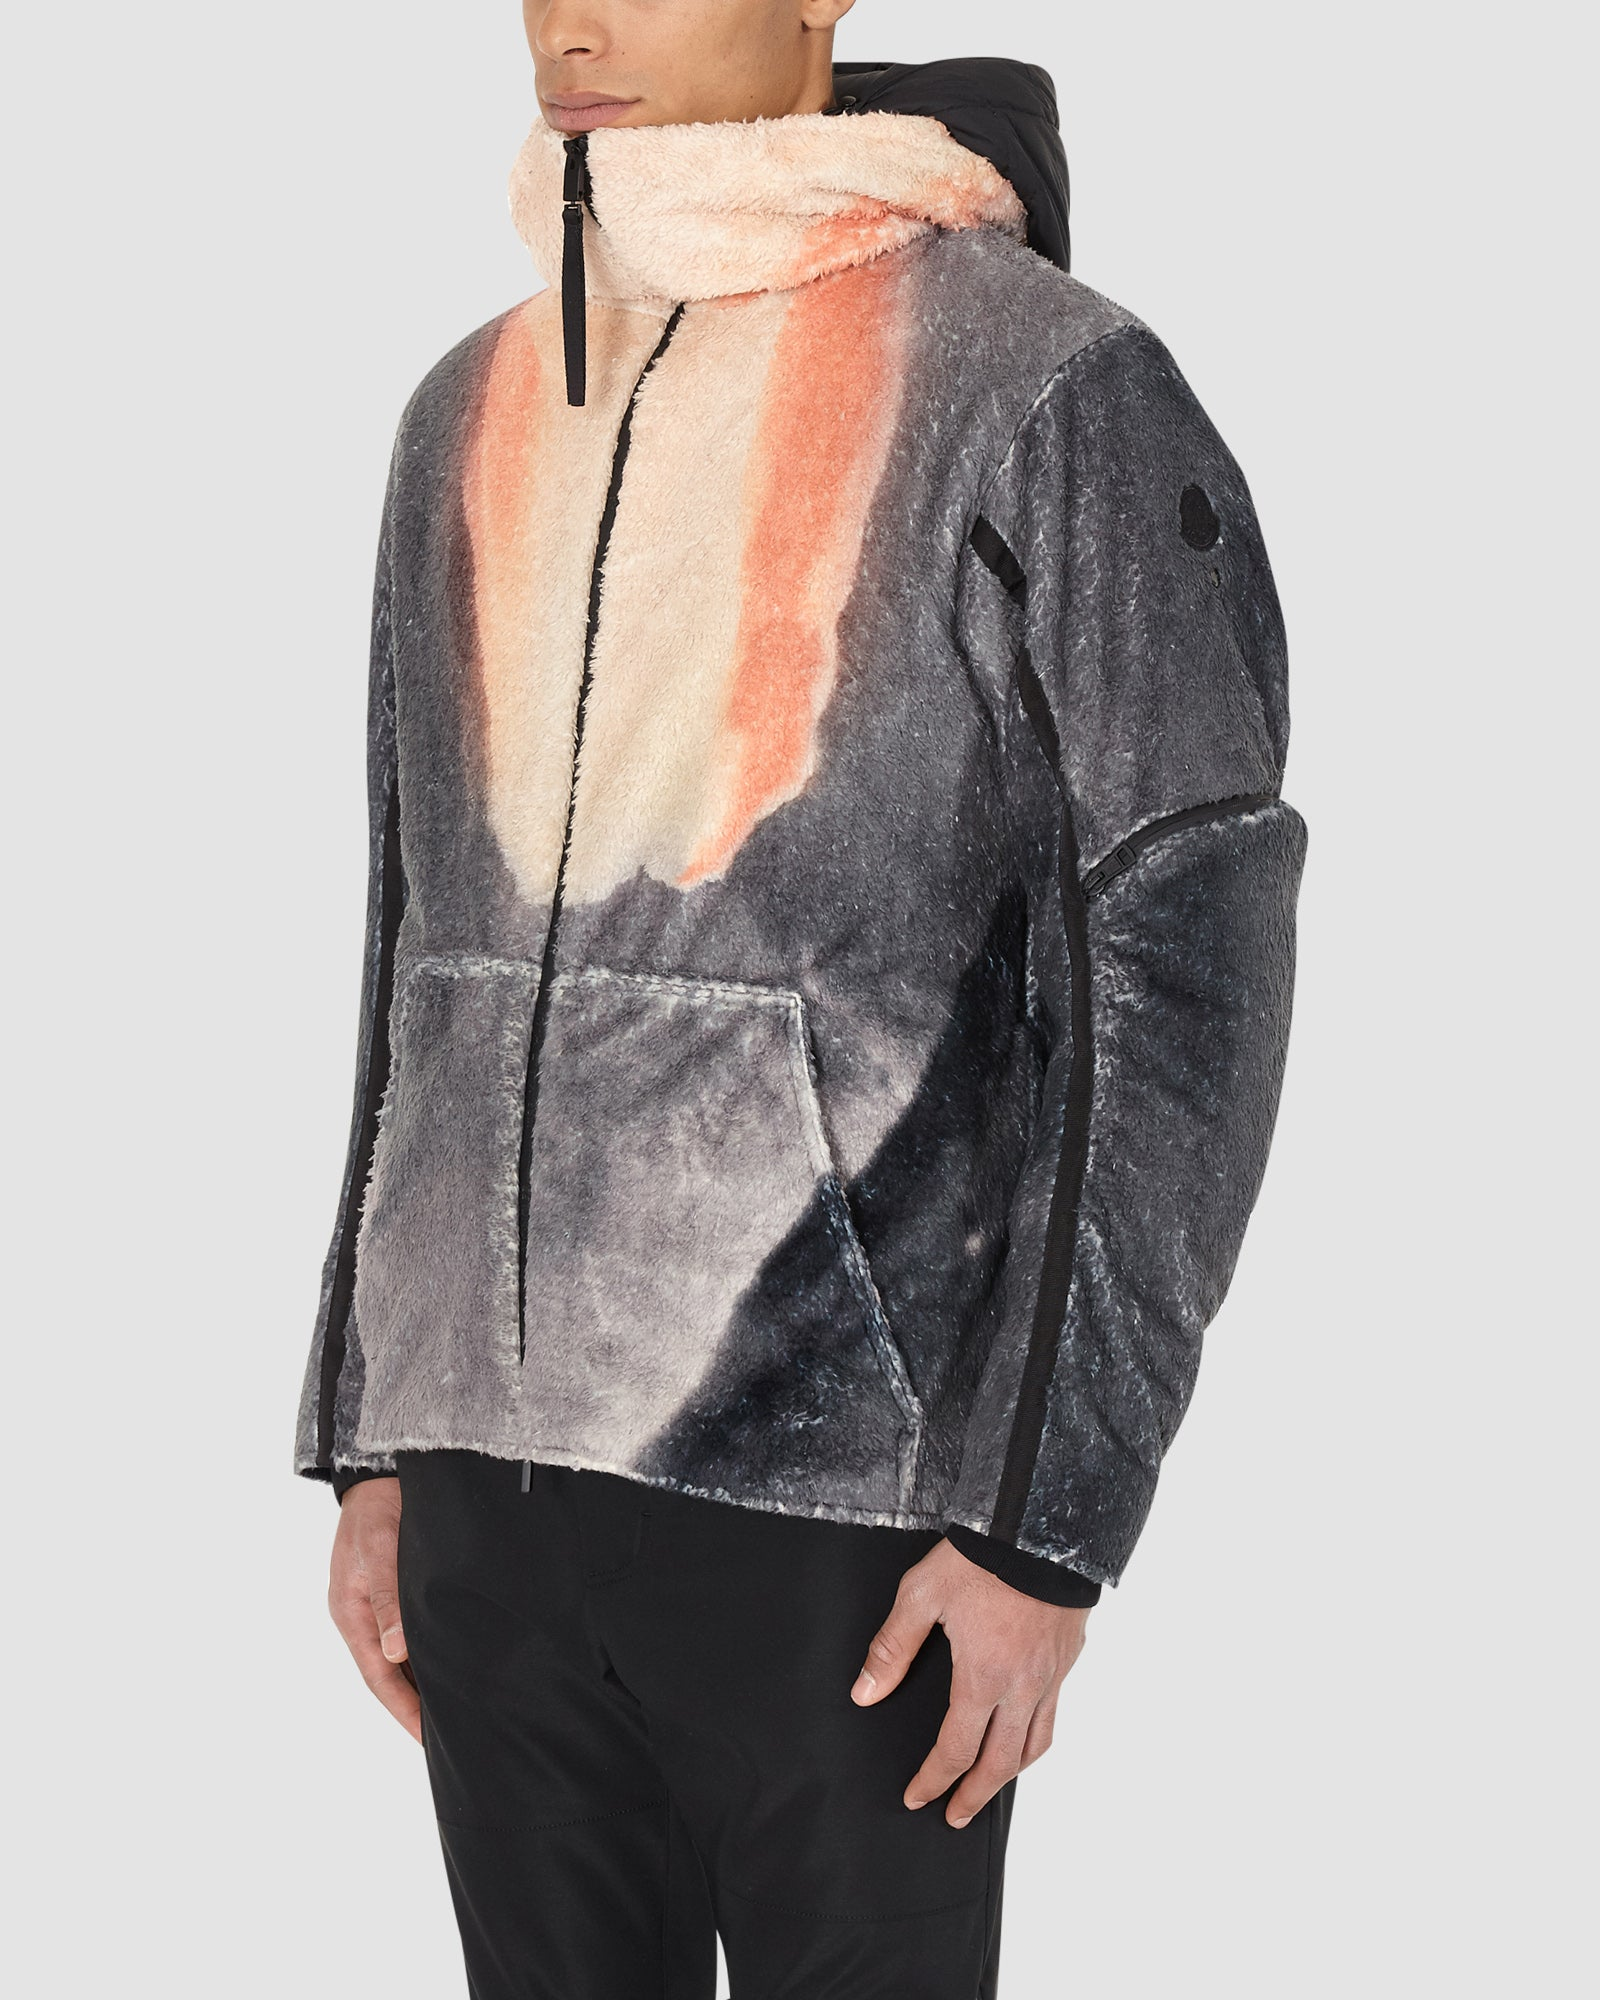 1017 ALYX 9SM | MONCLER AMOS JACKET | Outerwear | Google Shopping, GREY/ORANGE, Man, Moncler, Outerwear, S20, UNISEX